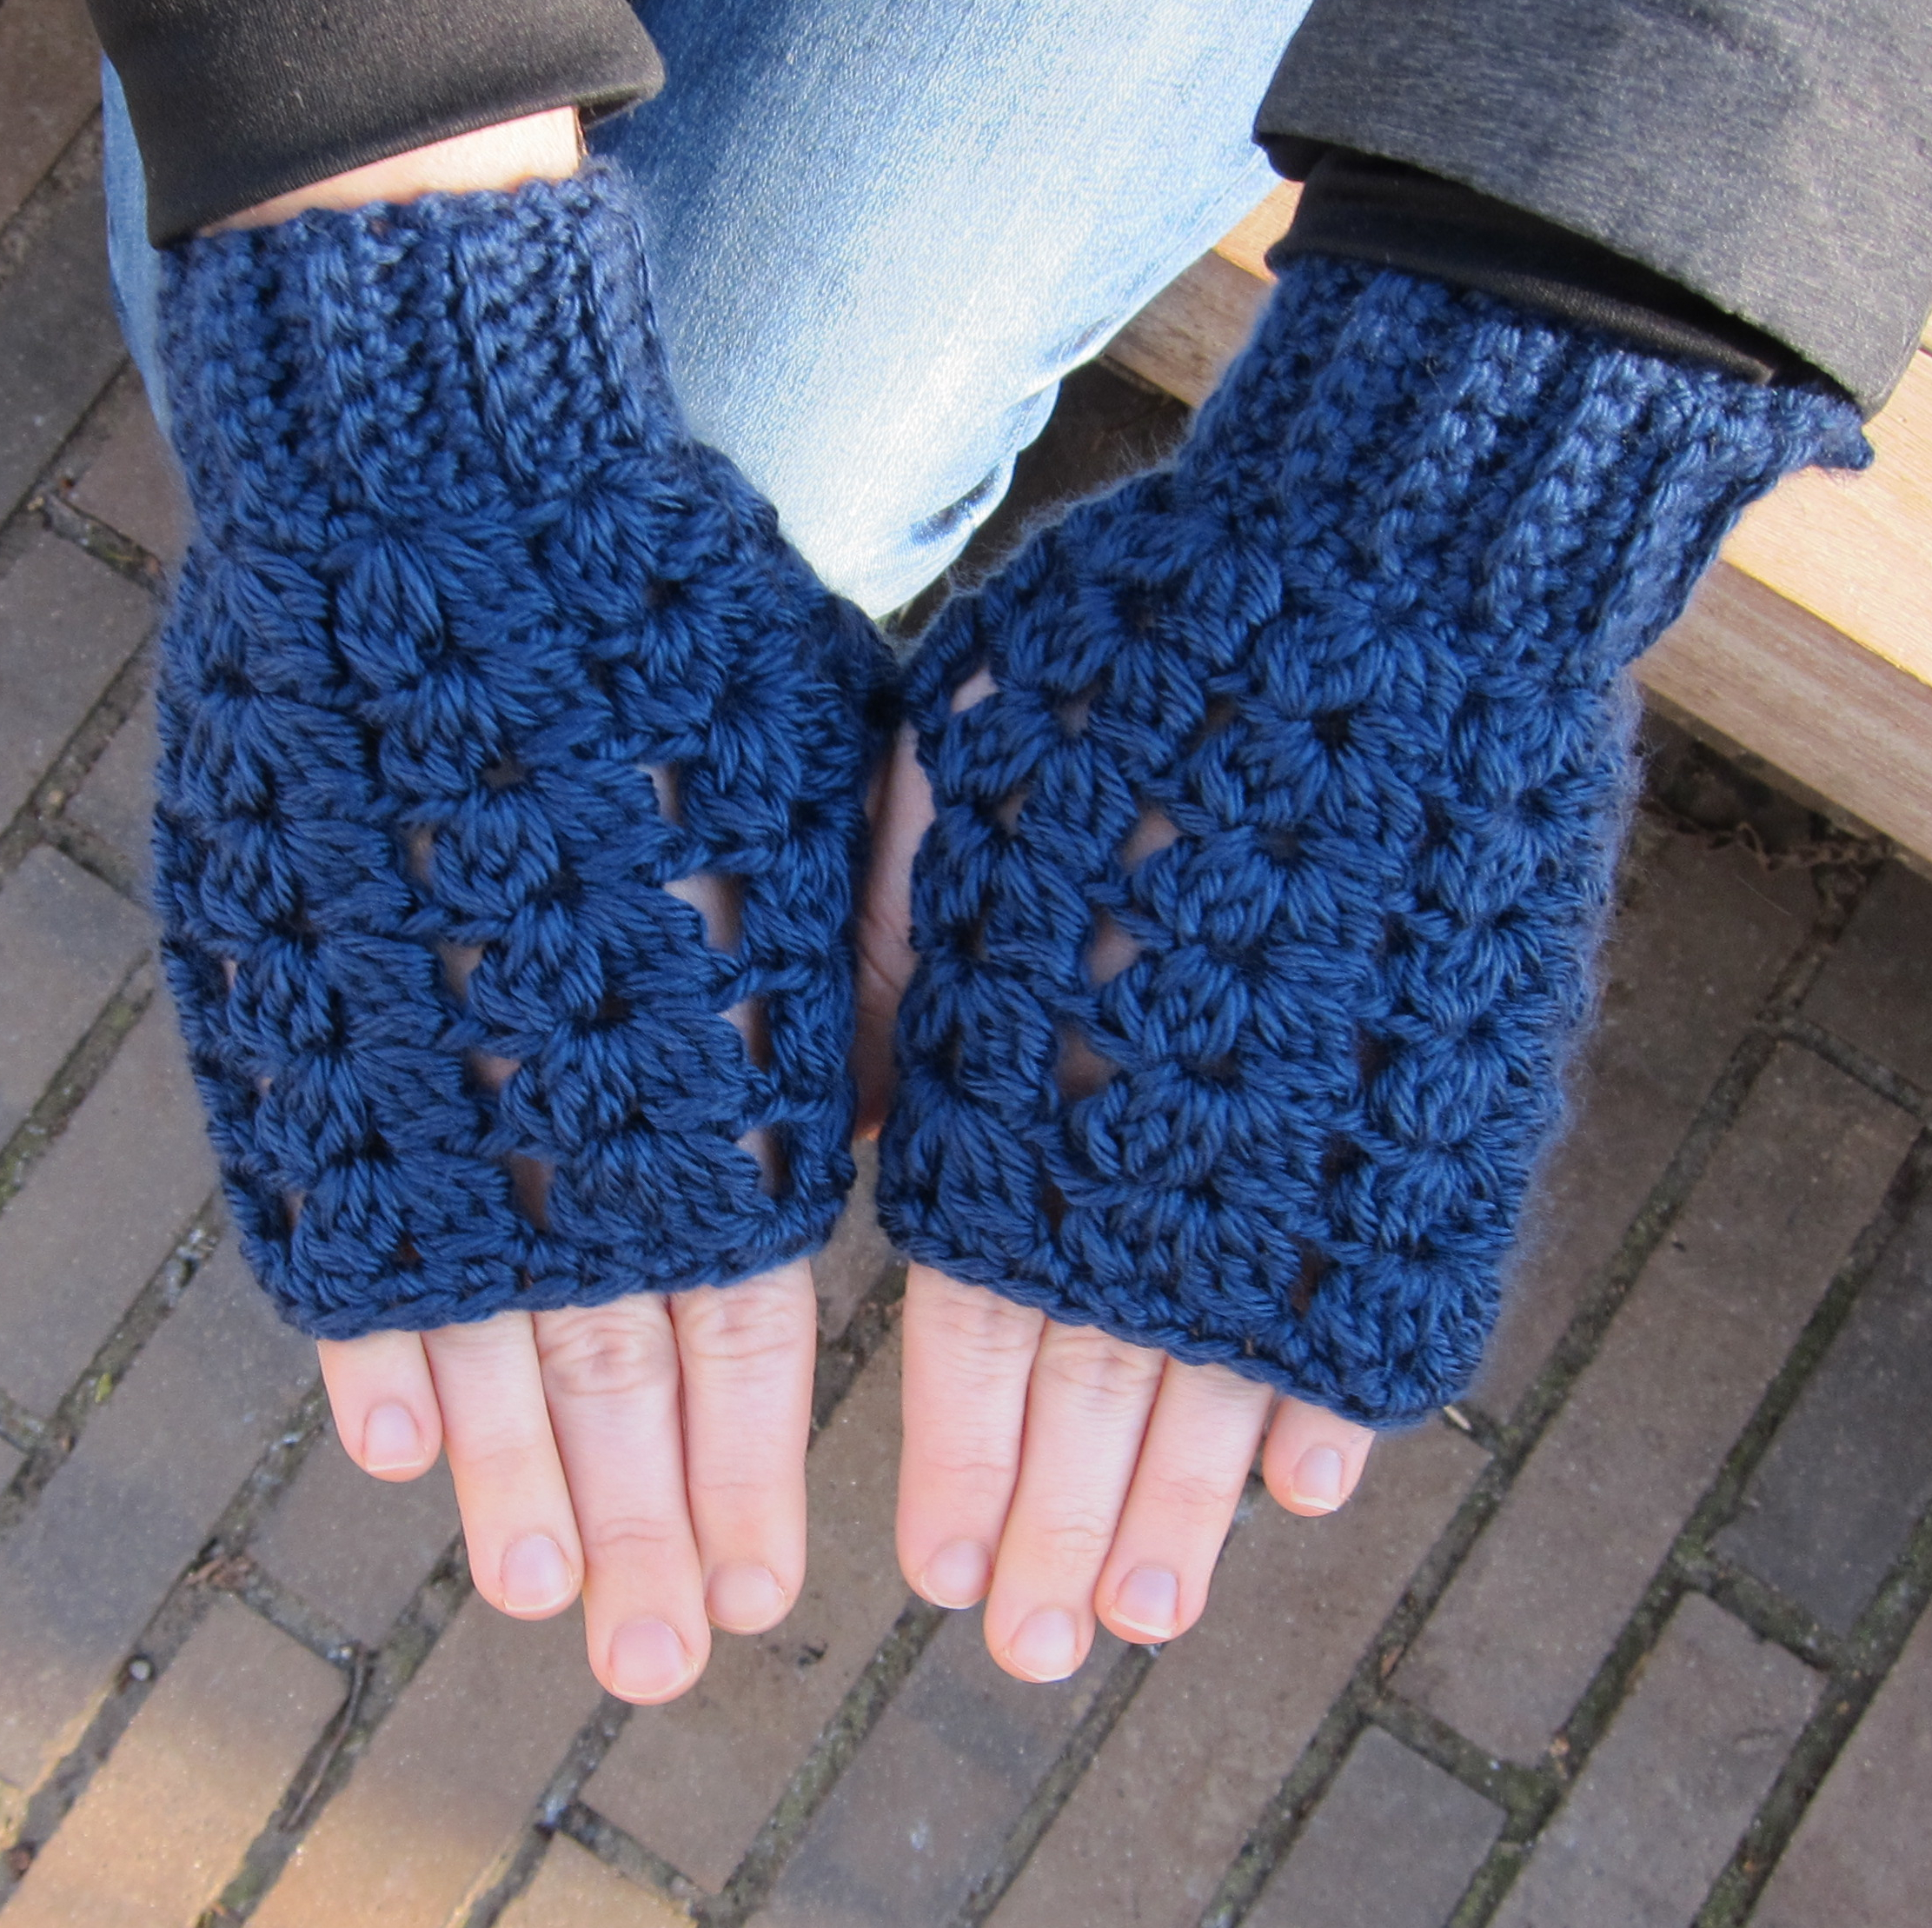 Crochet Fingerless Gloves Tutorial Butterfly Stitch : Cluster V-stitch fingerless gloves (and hat) Bowties and ...